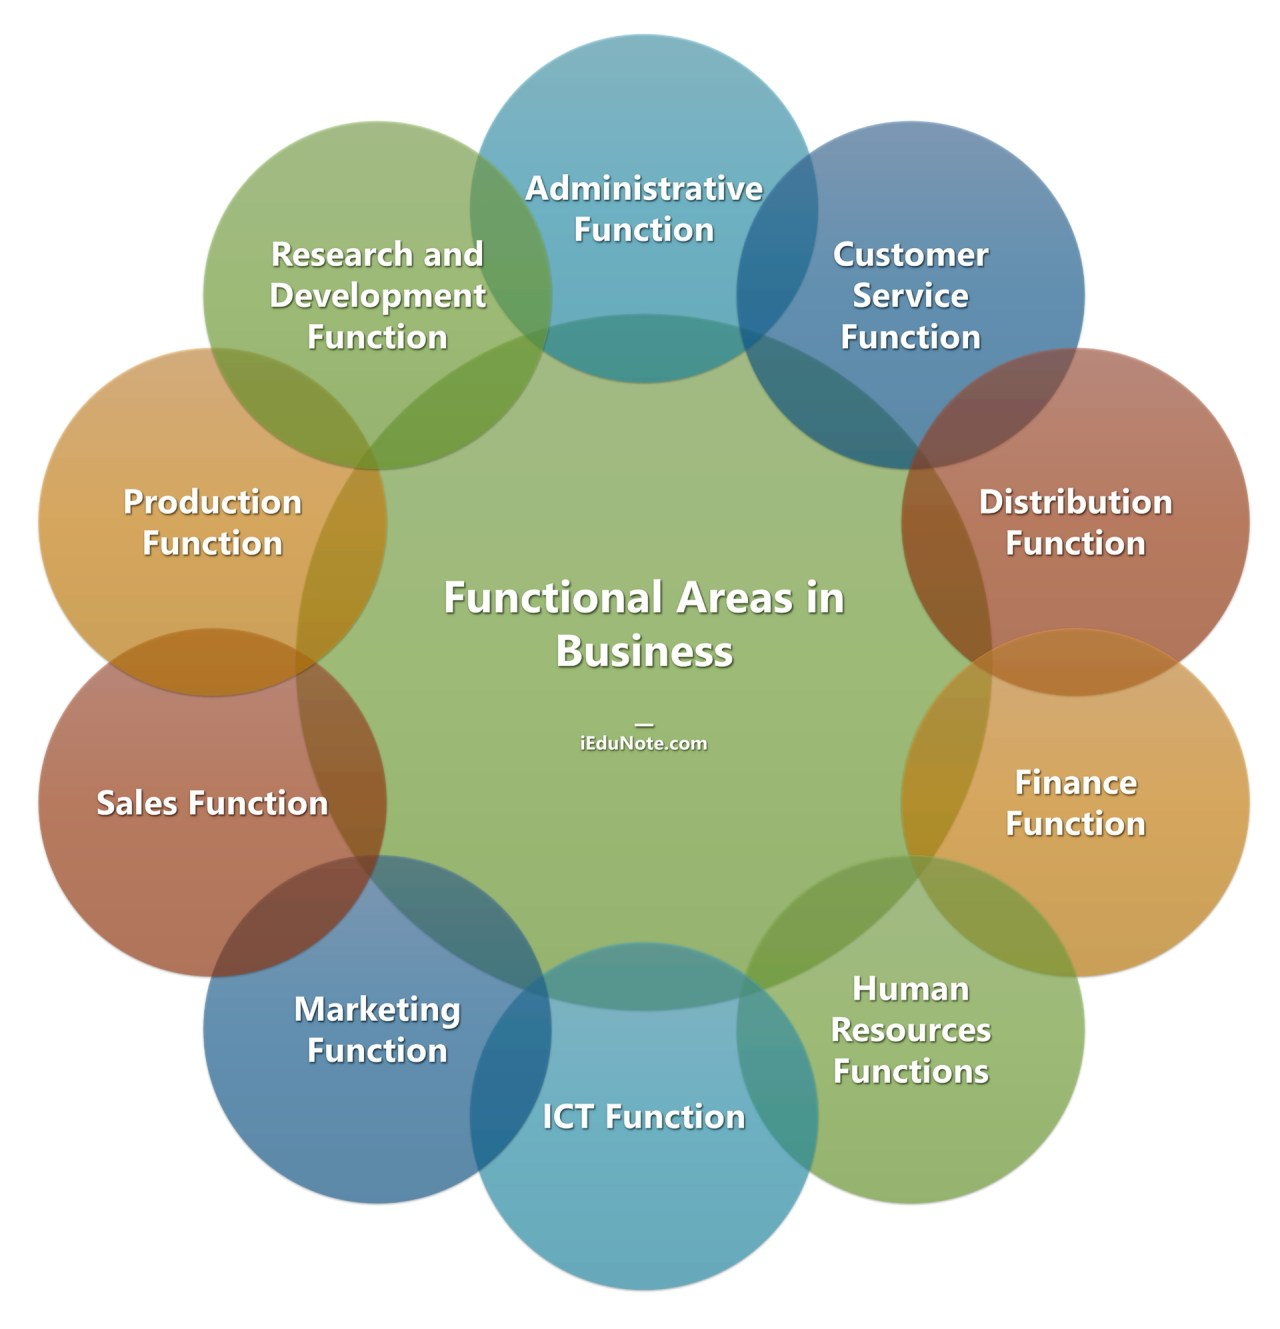 Functional Areas in Business